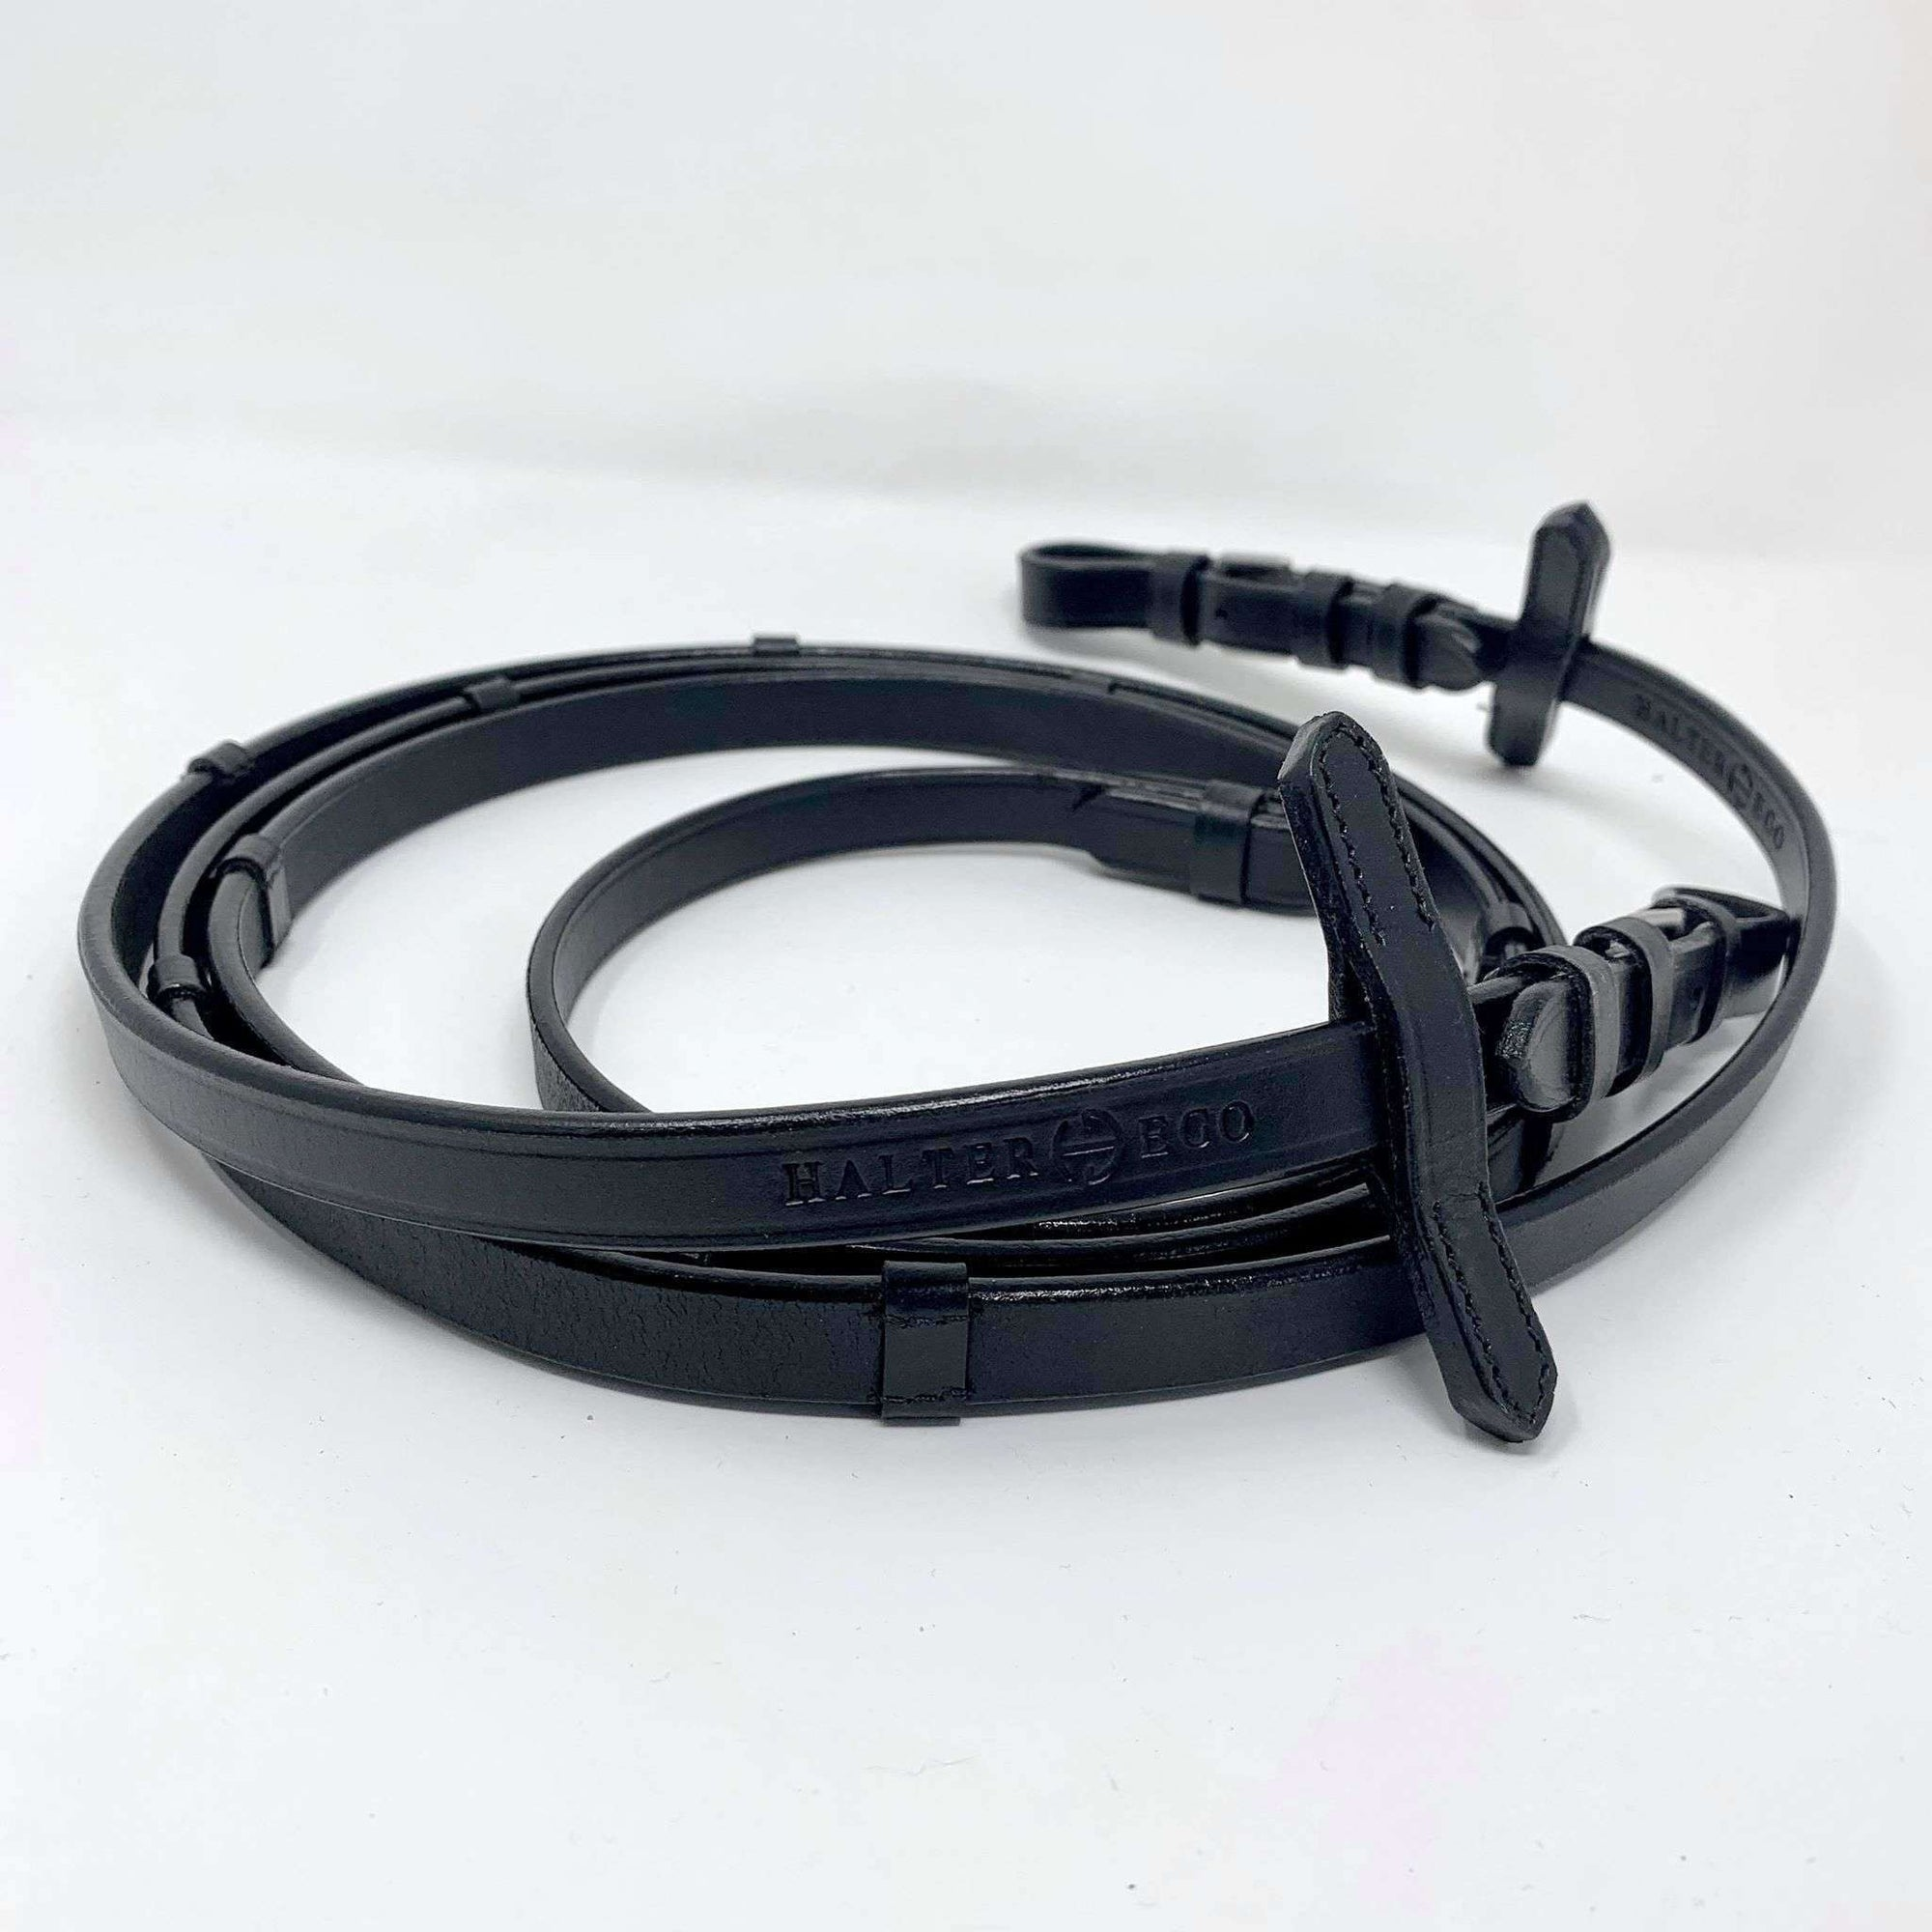 Halter Ego® Luxury Leather Reins With Stops